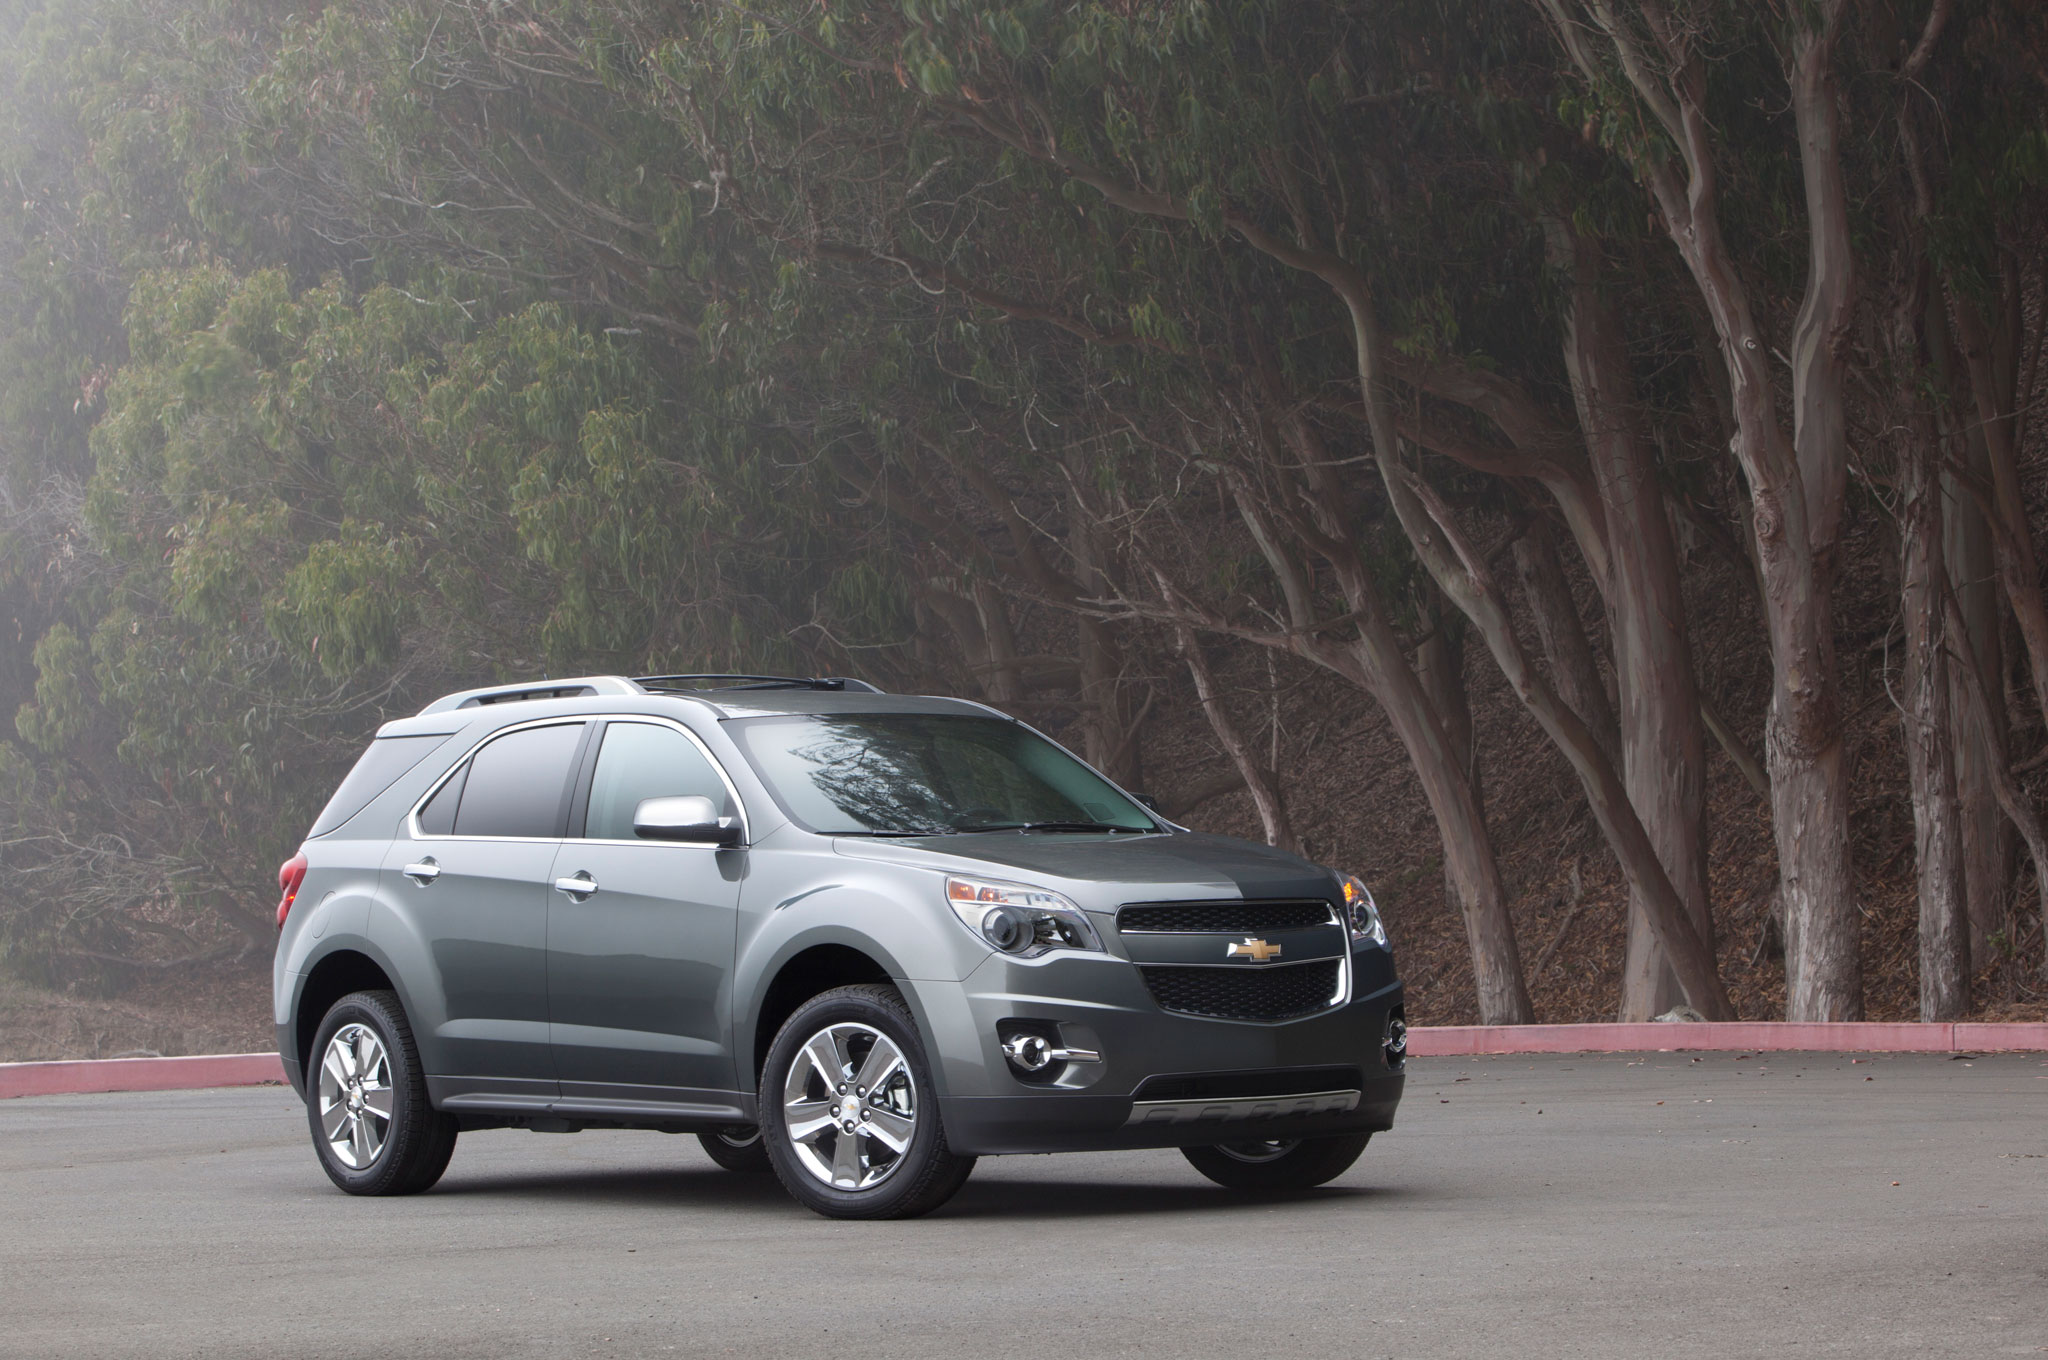 Chevrolet equinox 2015 photo - 3